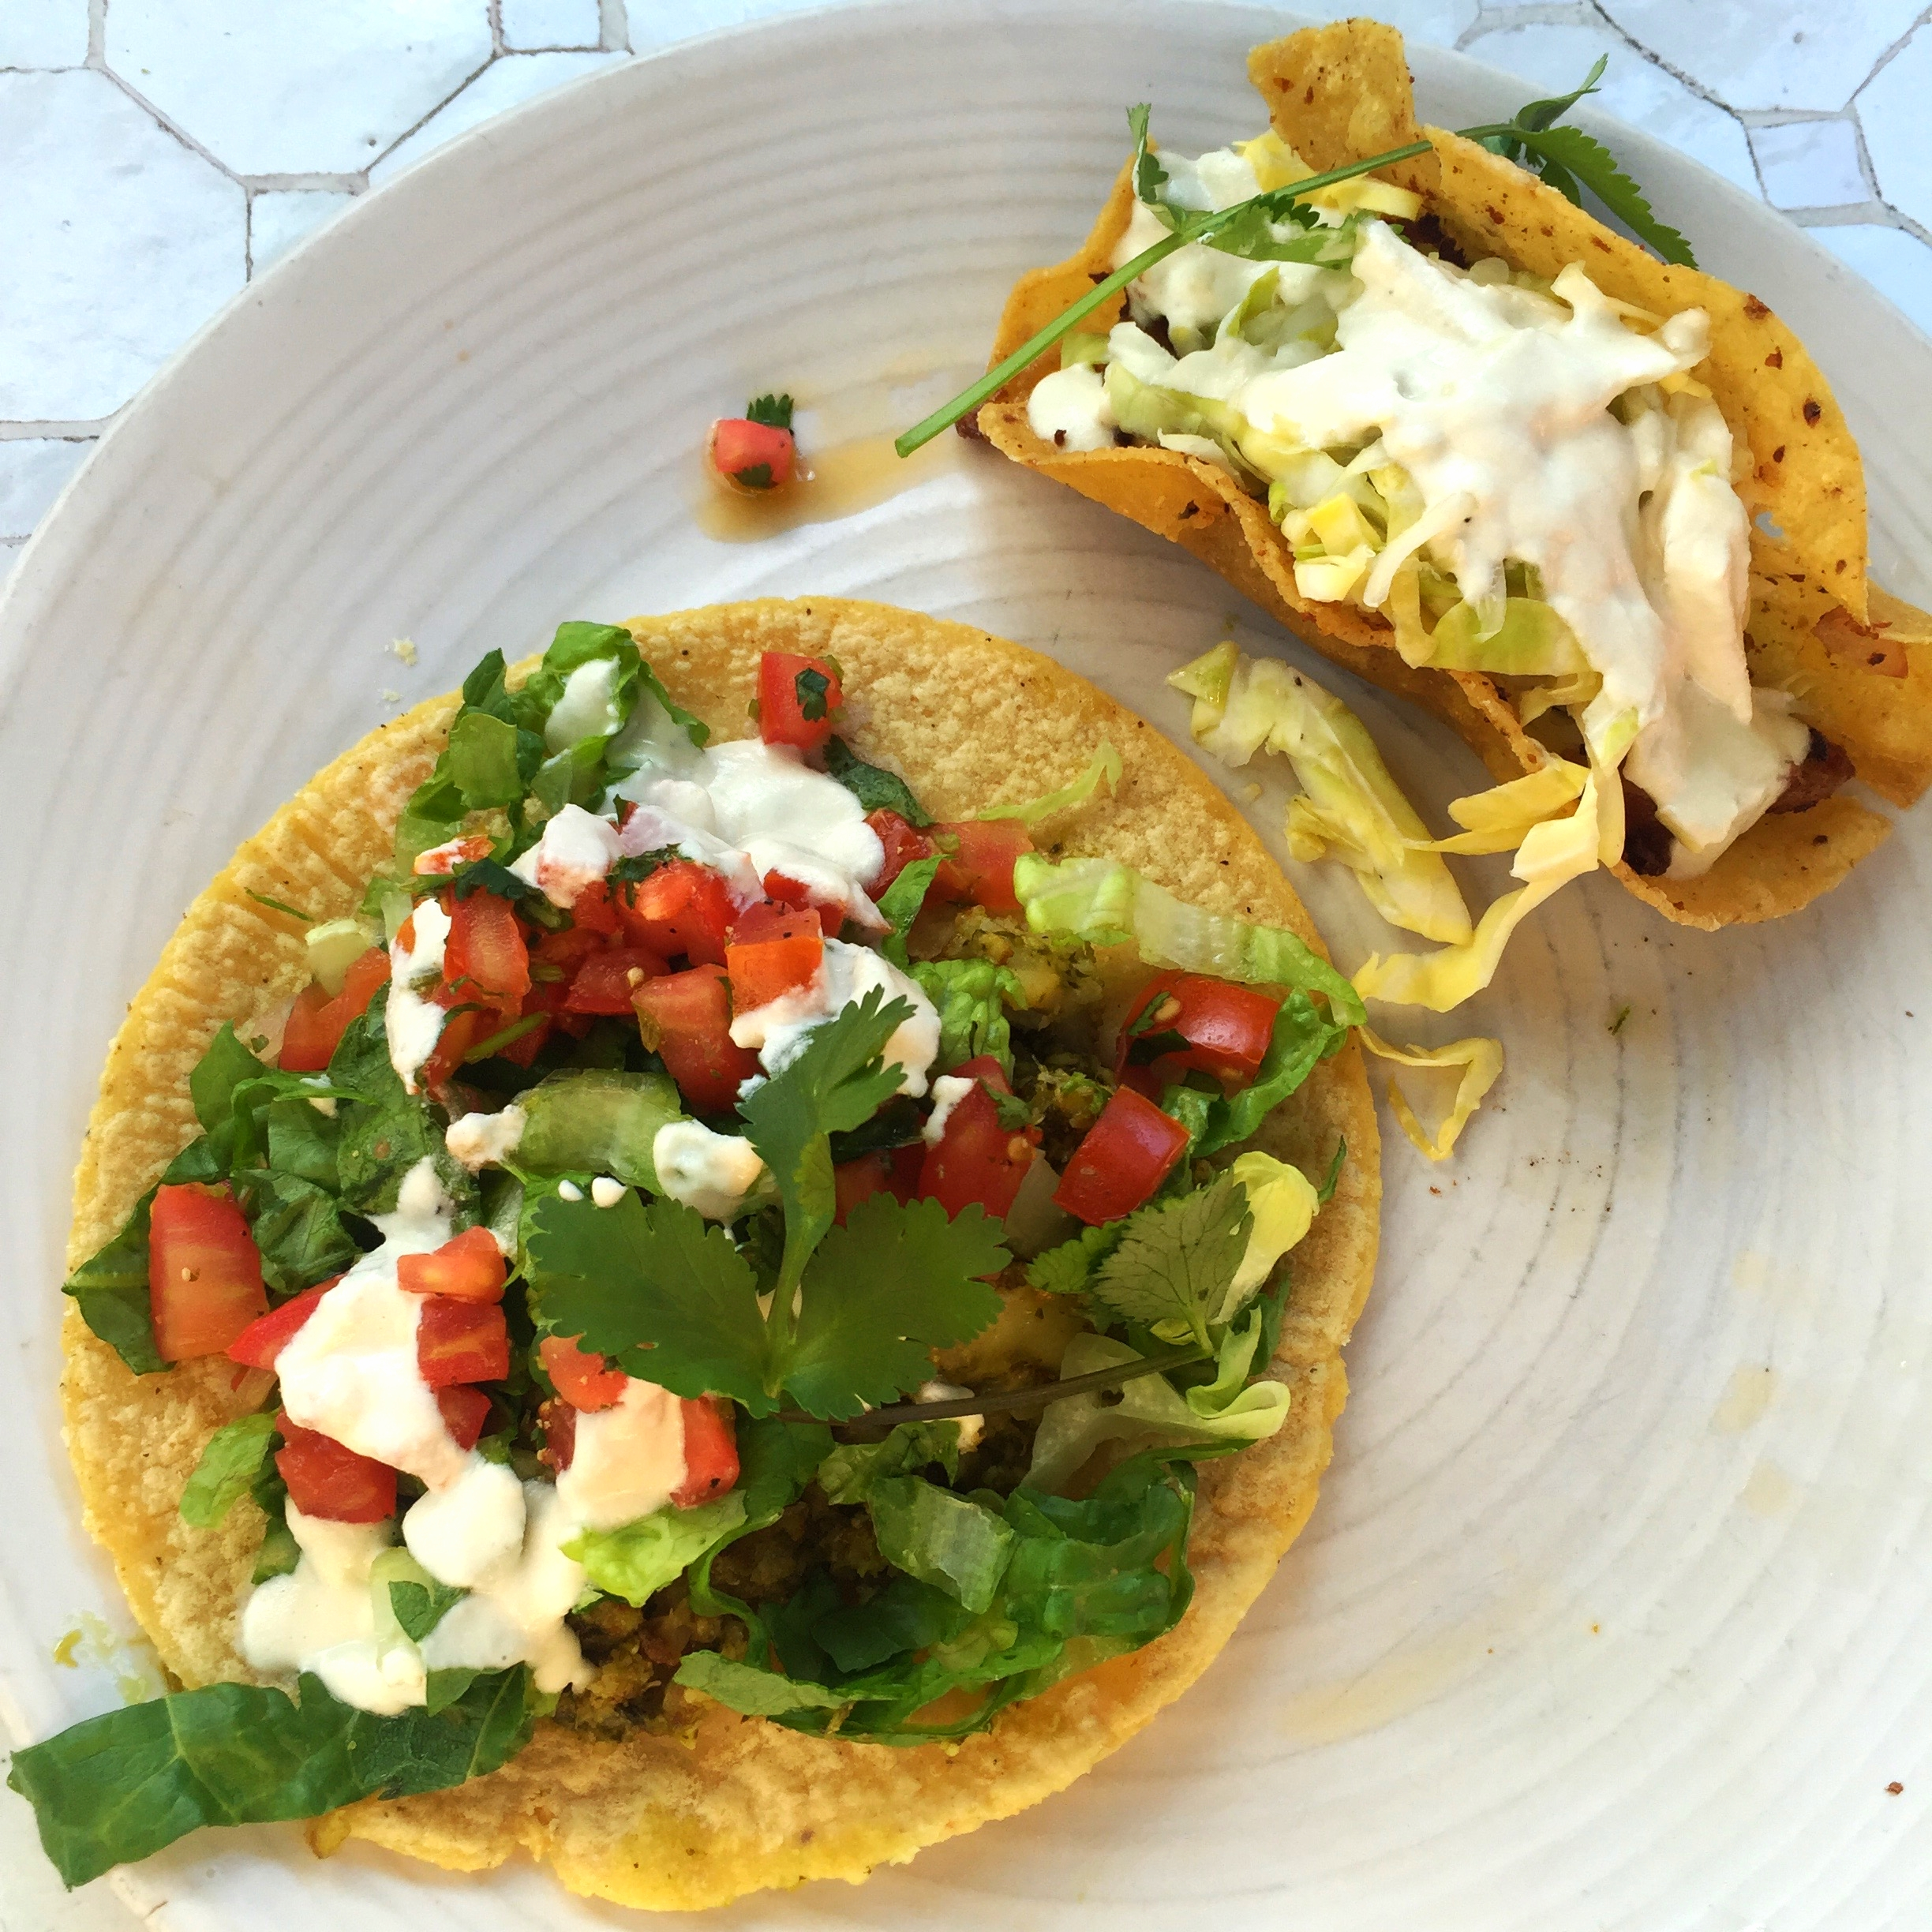 Cauliflower taco